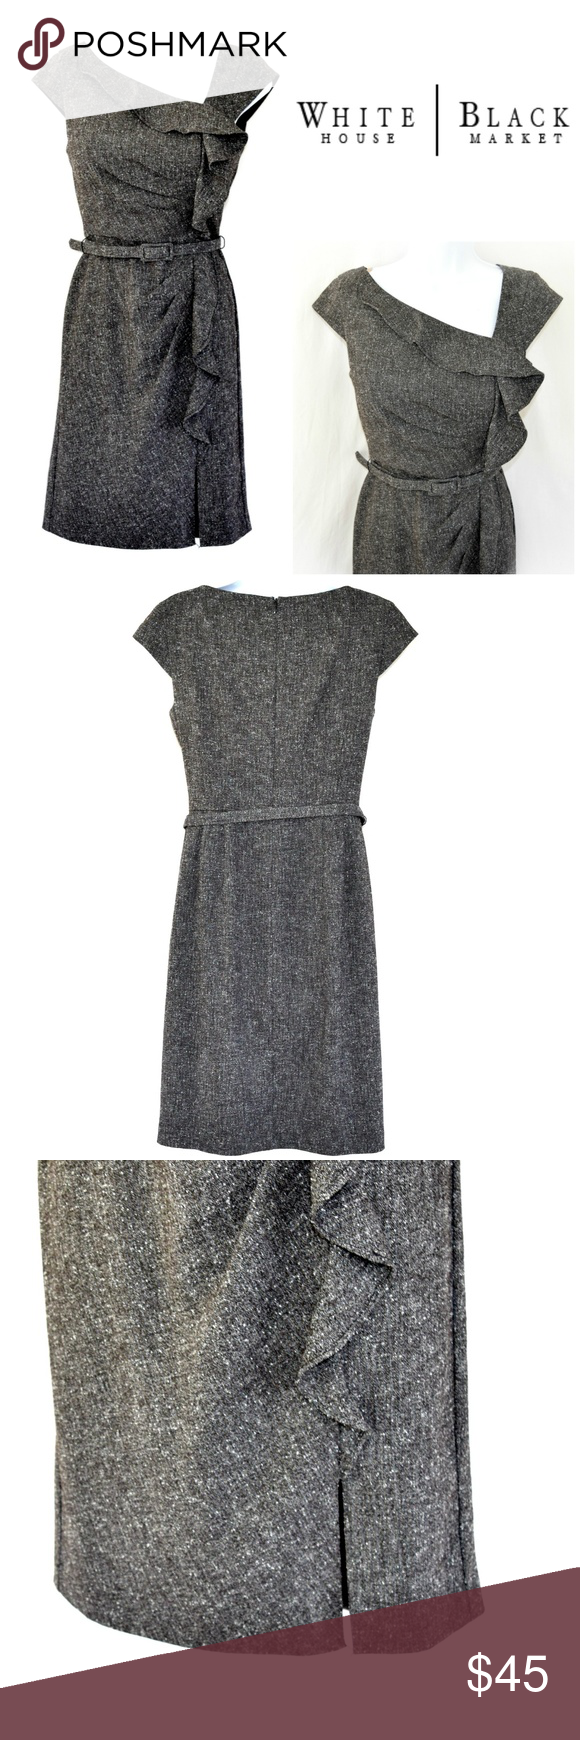 """WHBM Tweed Belted Ruffle Career Dress This sleek dark grey / black career dress brings the sexy chic of Mad Men to mind. Asymmetric neckline. Ruffle at neck drapes down to hem. Belted waist. Side pleated torso. Hidden back zipper. Cap sleeves. Front slit.   Approx Lay Flat MMs. Length 37"""" Waist 14"""" Pit to Pit 17"""" White House Black Market Dresses"""